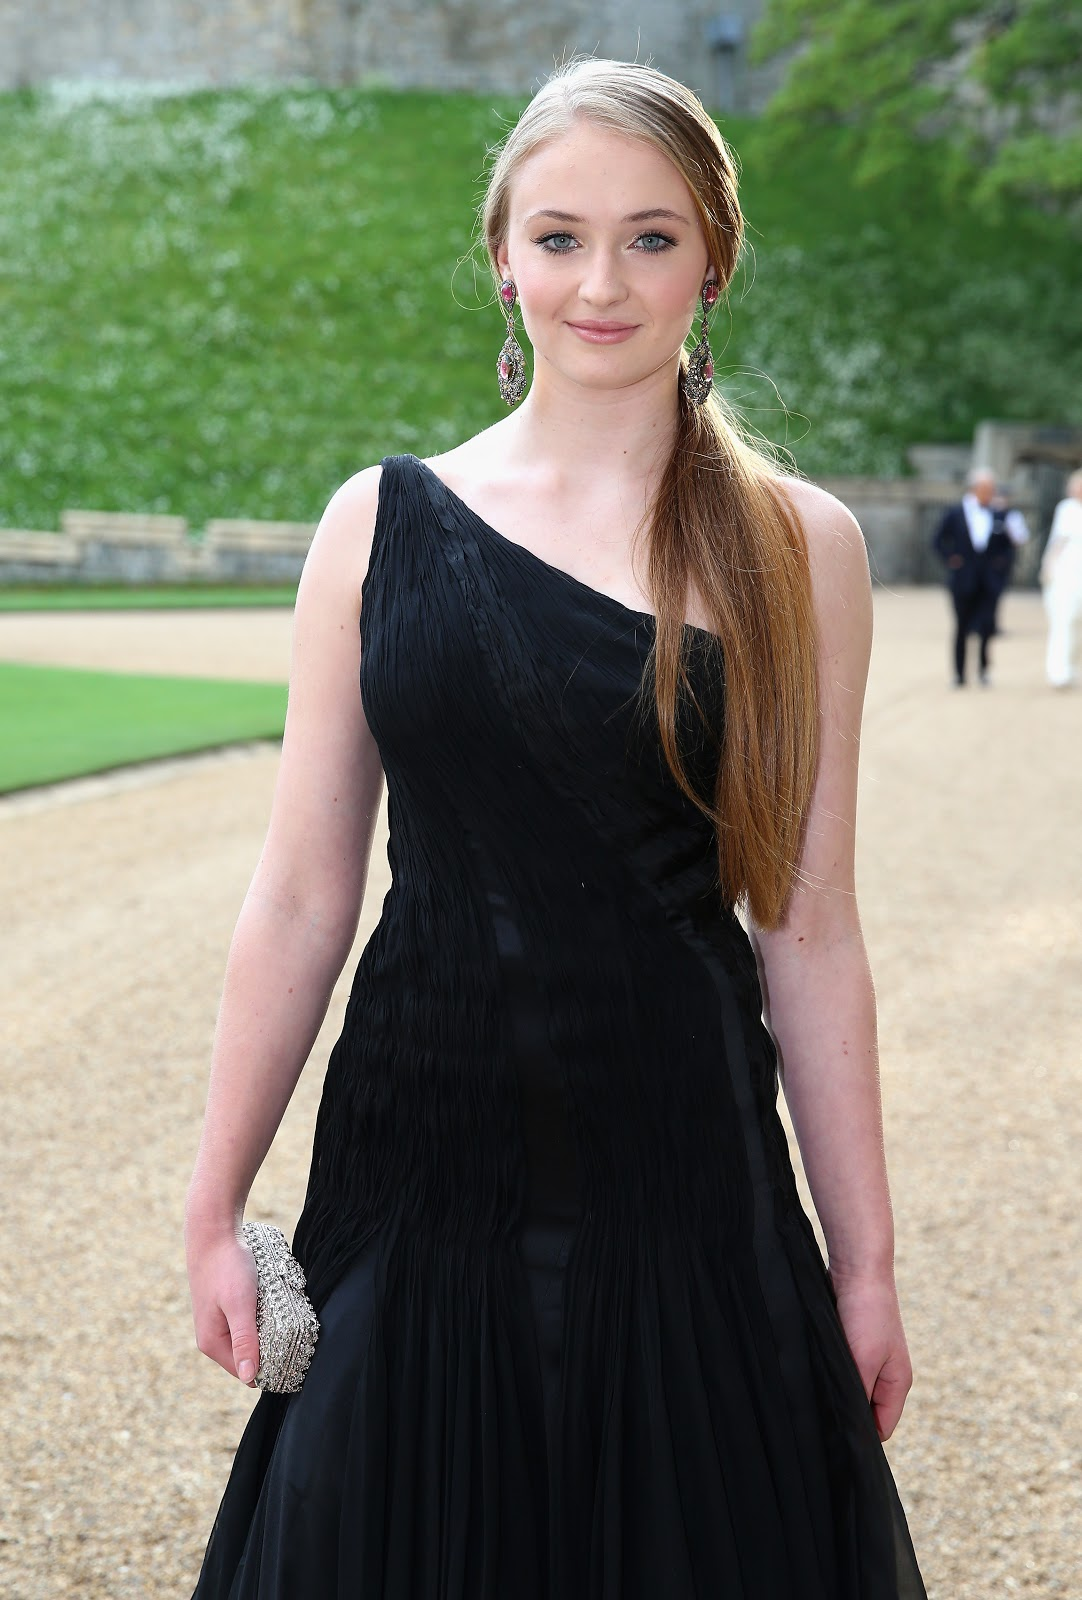 'Game of Thrones'  actress Sophie Turner Full HD Images & Wallpapers